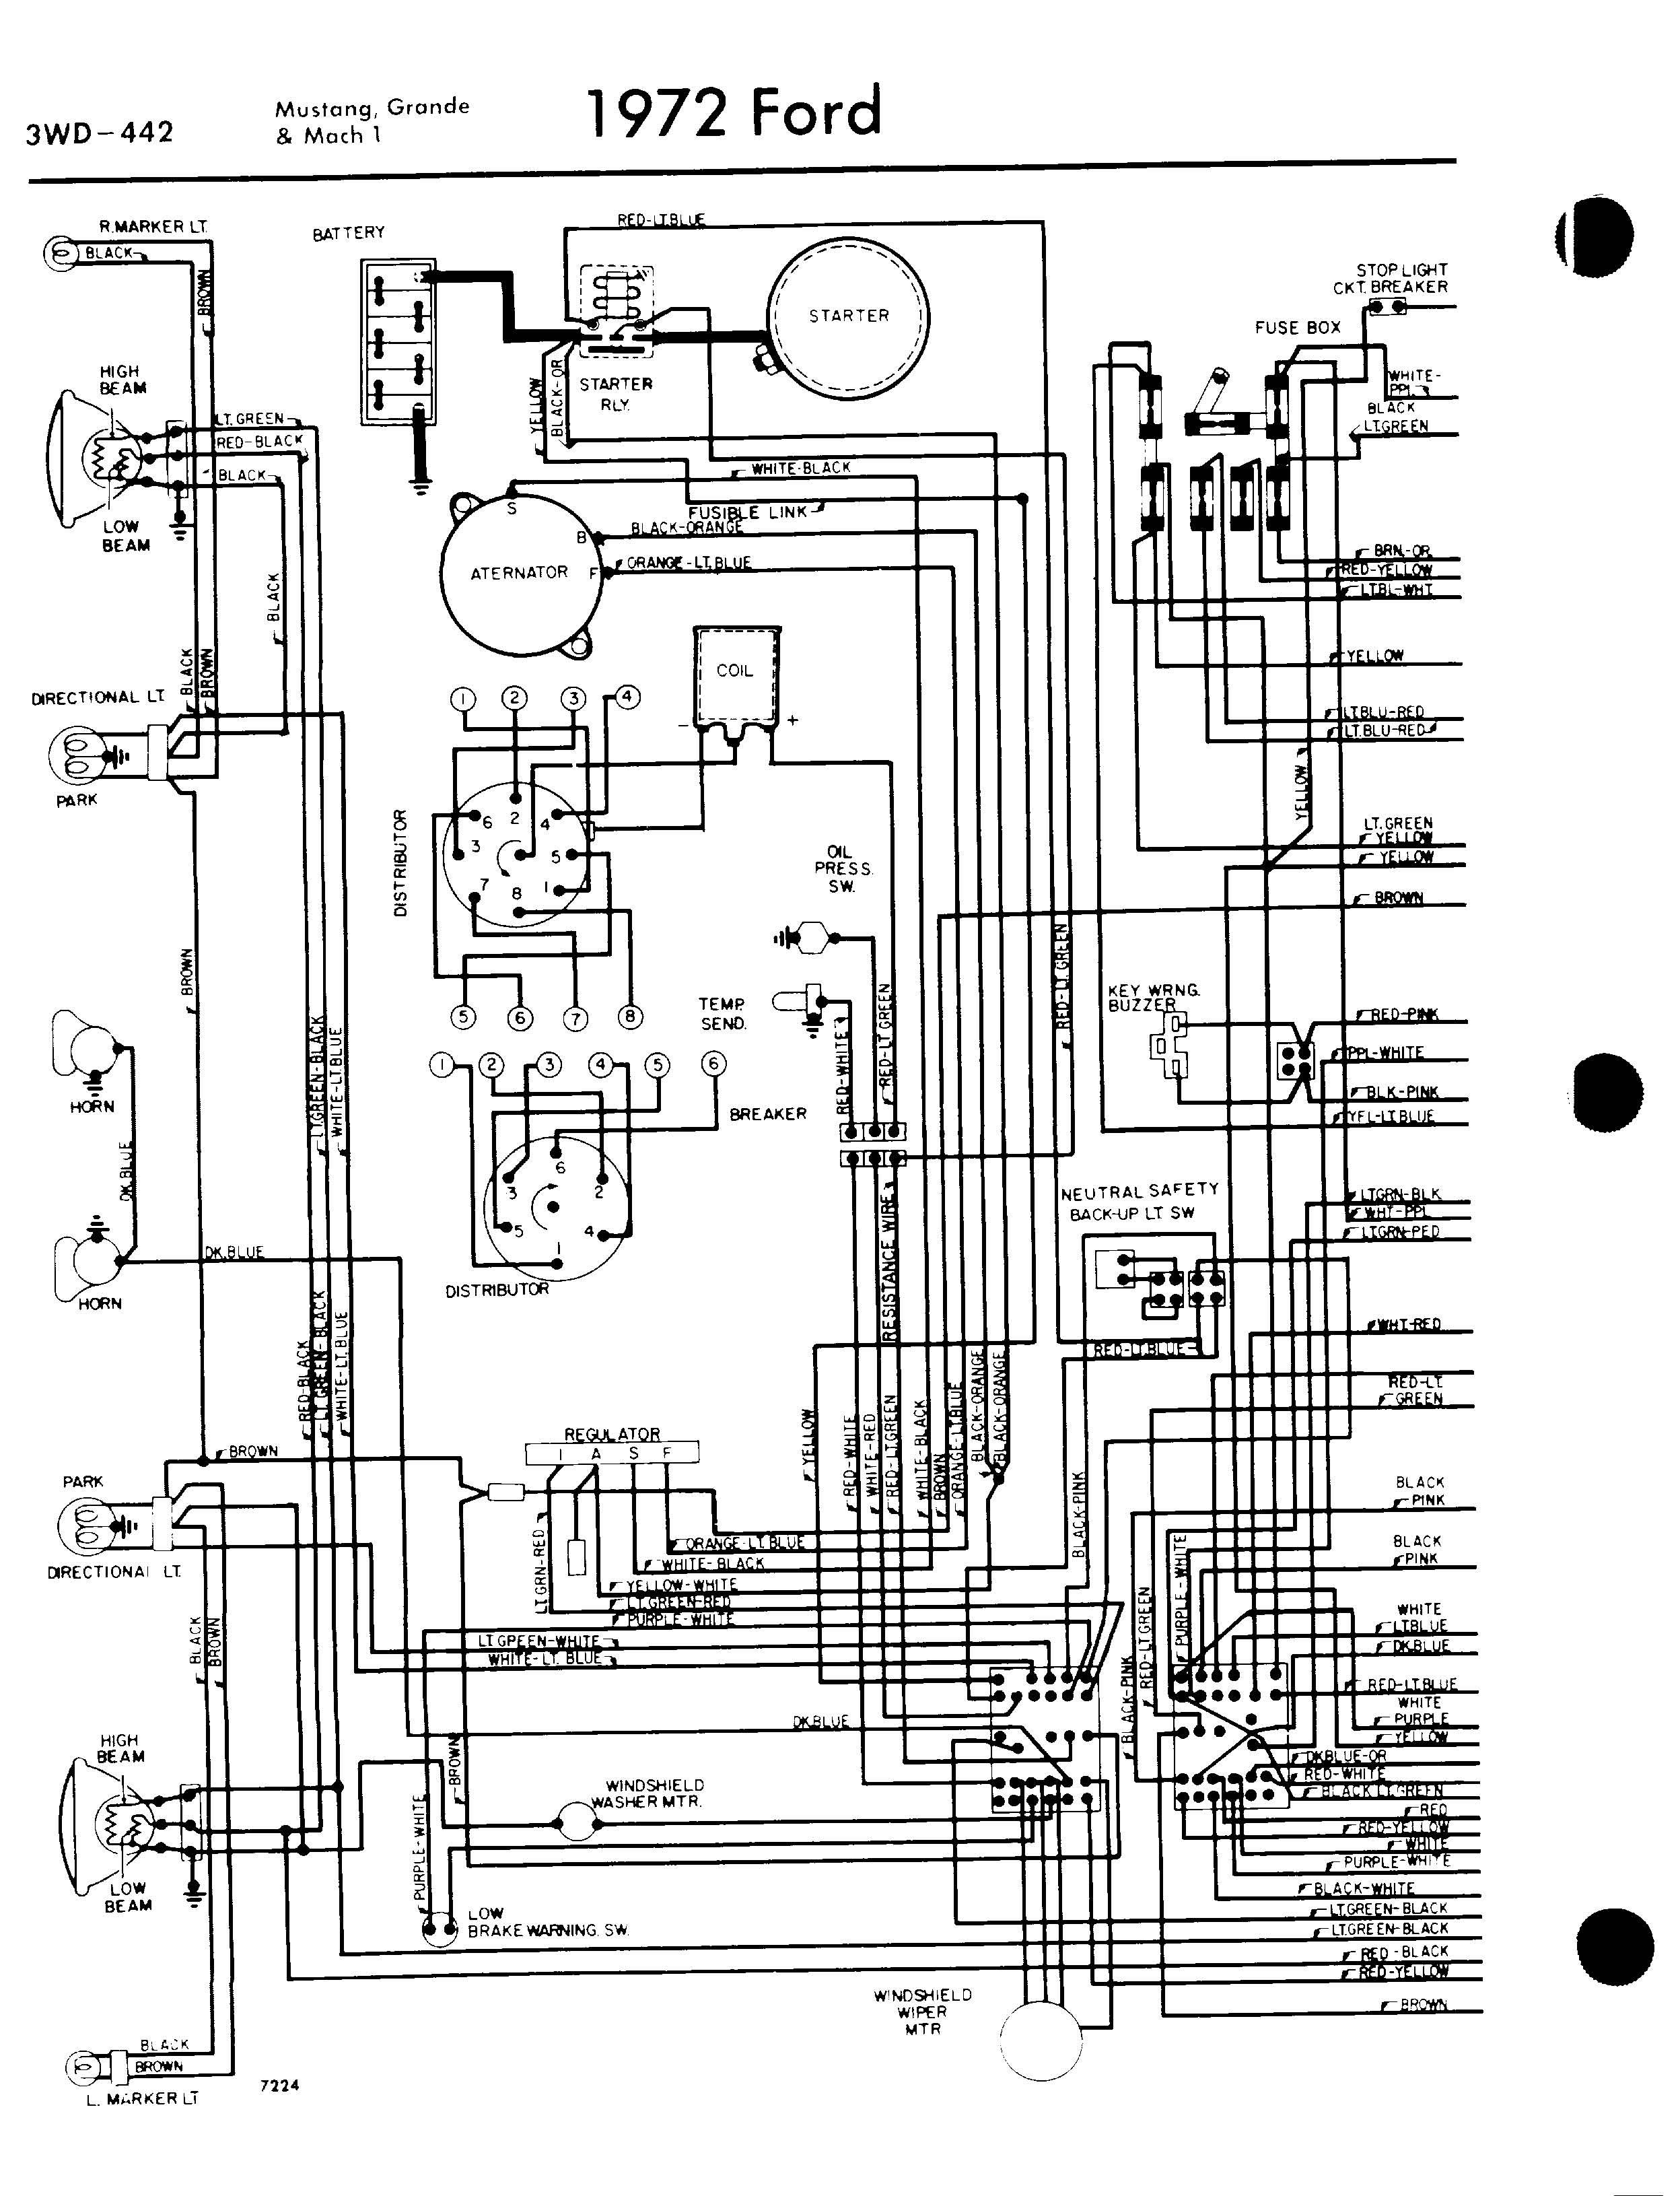 71af7a58e095e6a7716b32f1b23e8bd2 72 mach1 alternator wire harness diagram yahoo search results 1969 mustang alternator wiring diagram at gsmportal.co